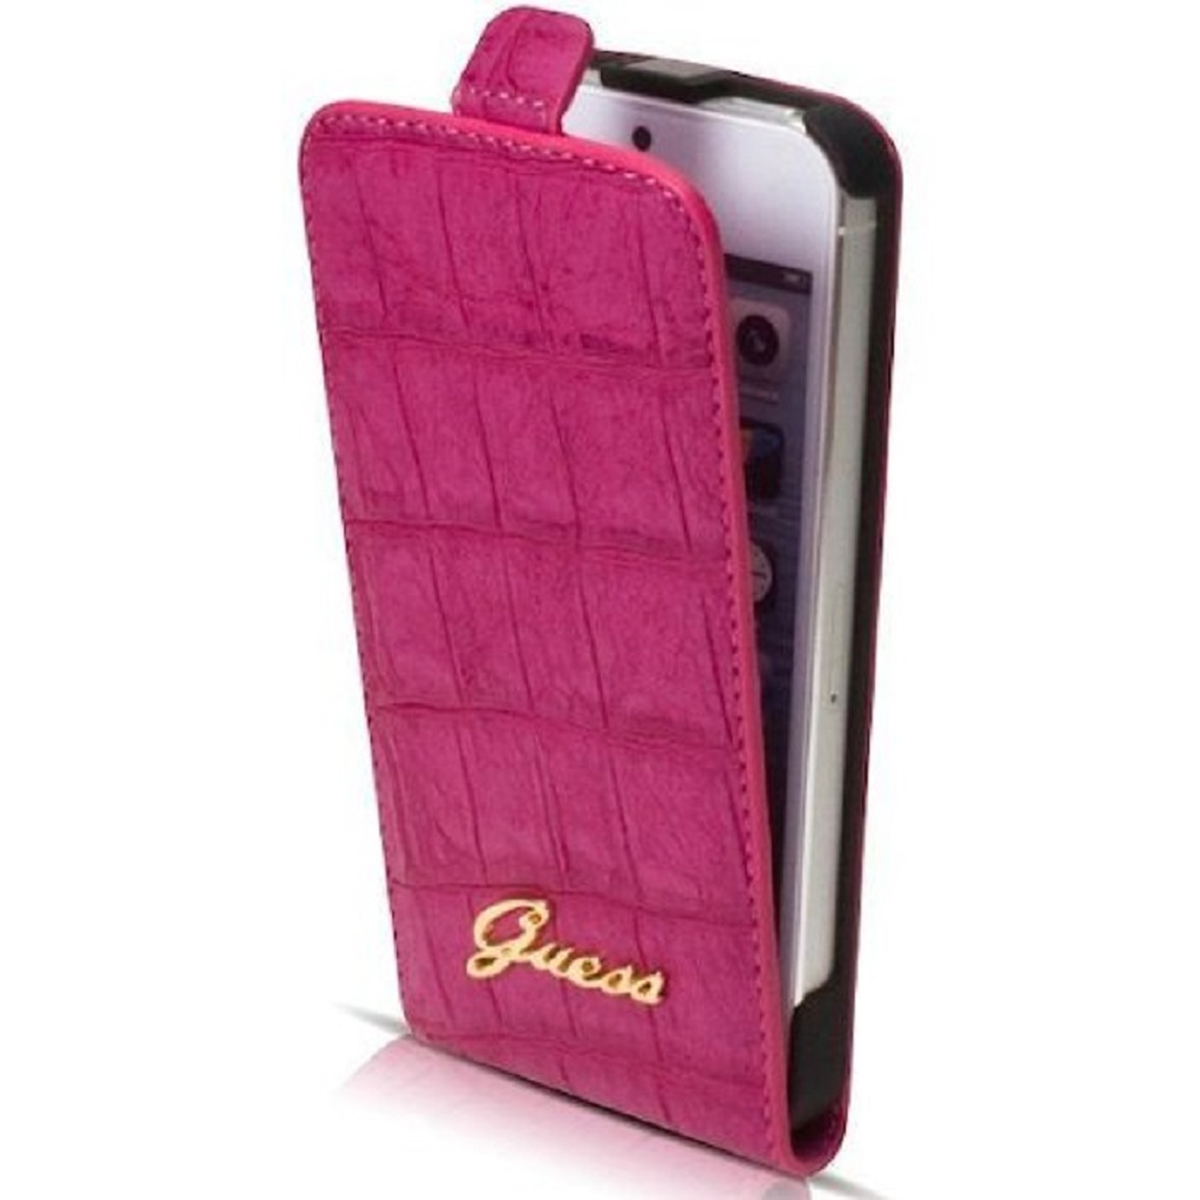 Guess Flapcase iPhone 5/5S croco/pink